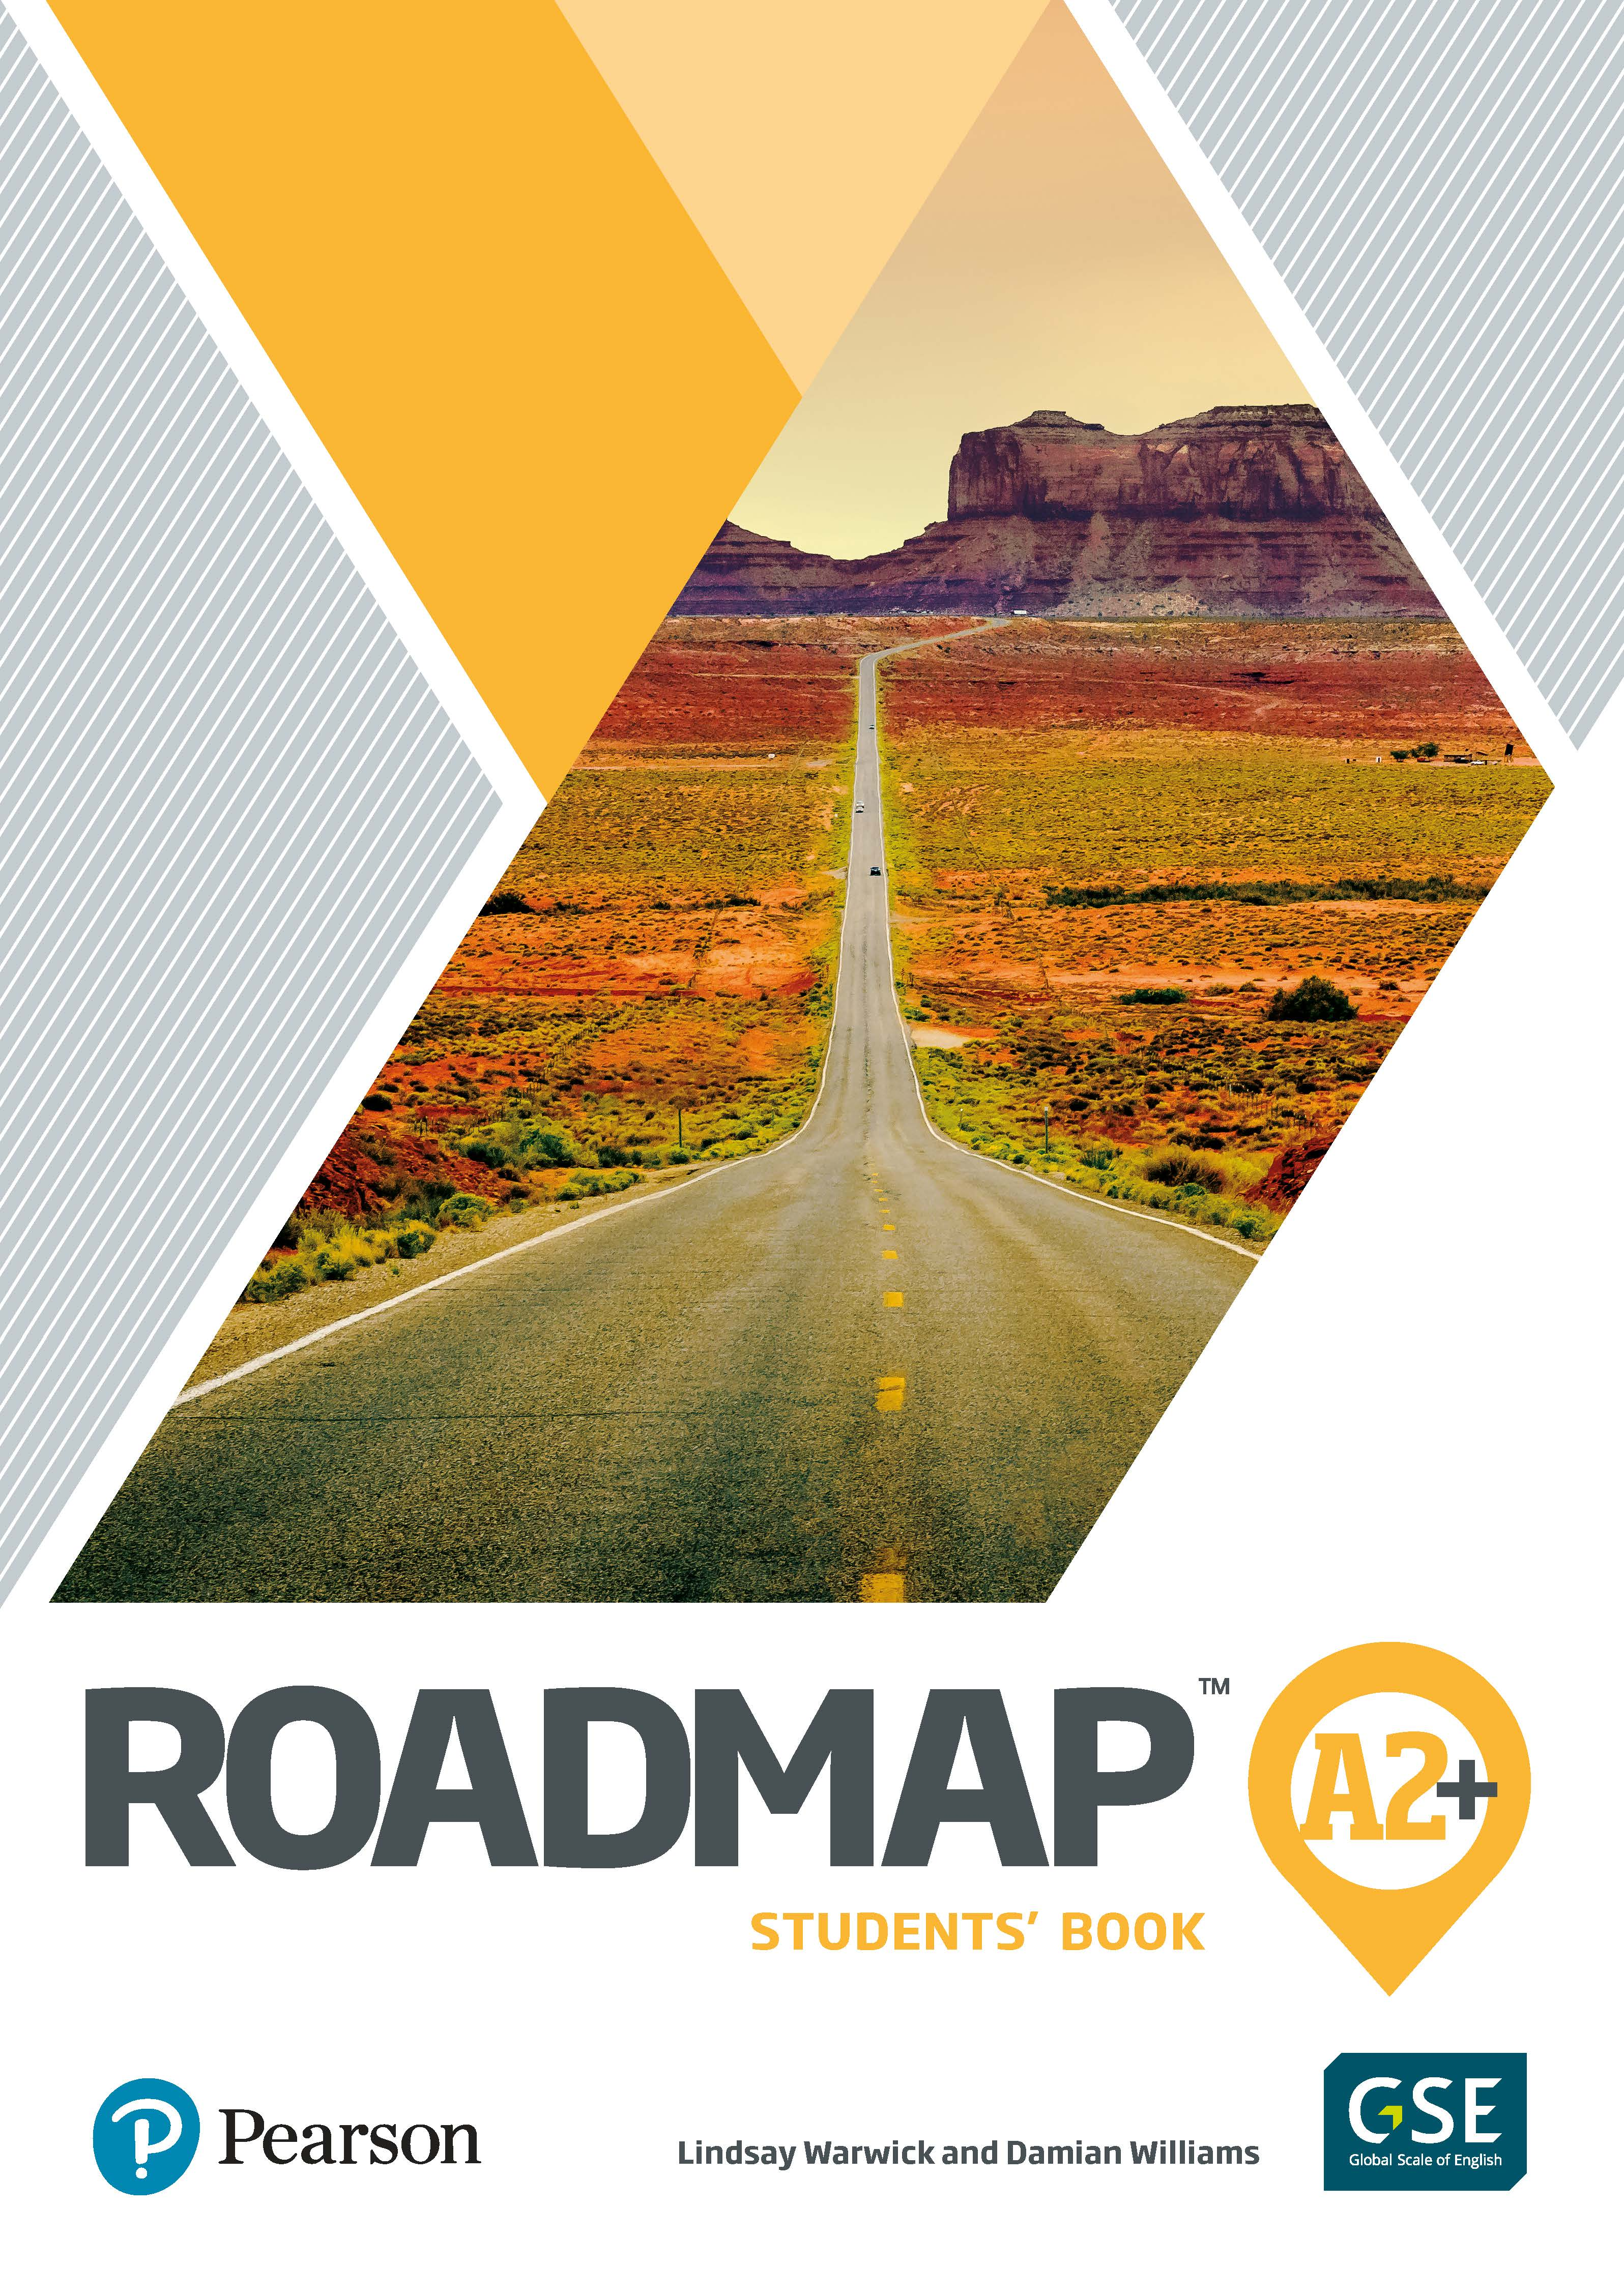 roadmap students book